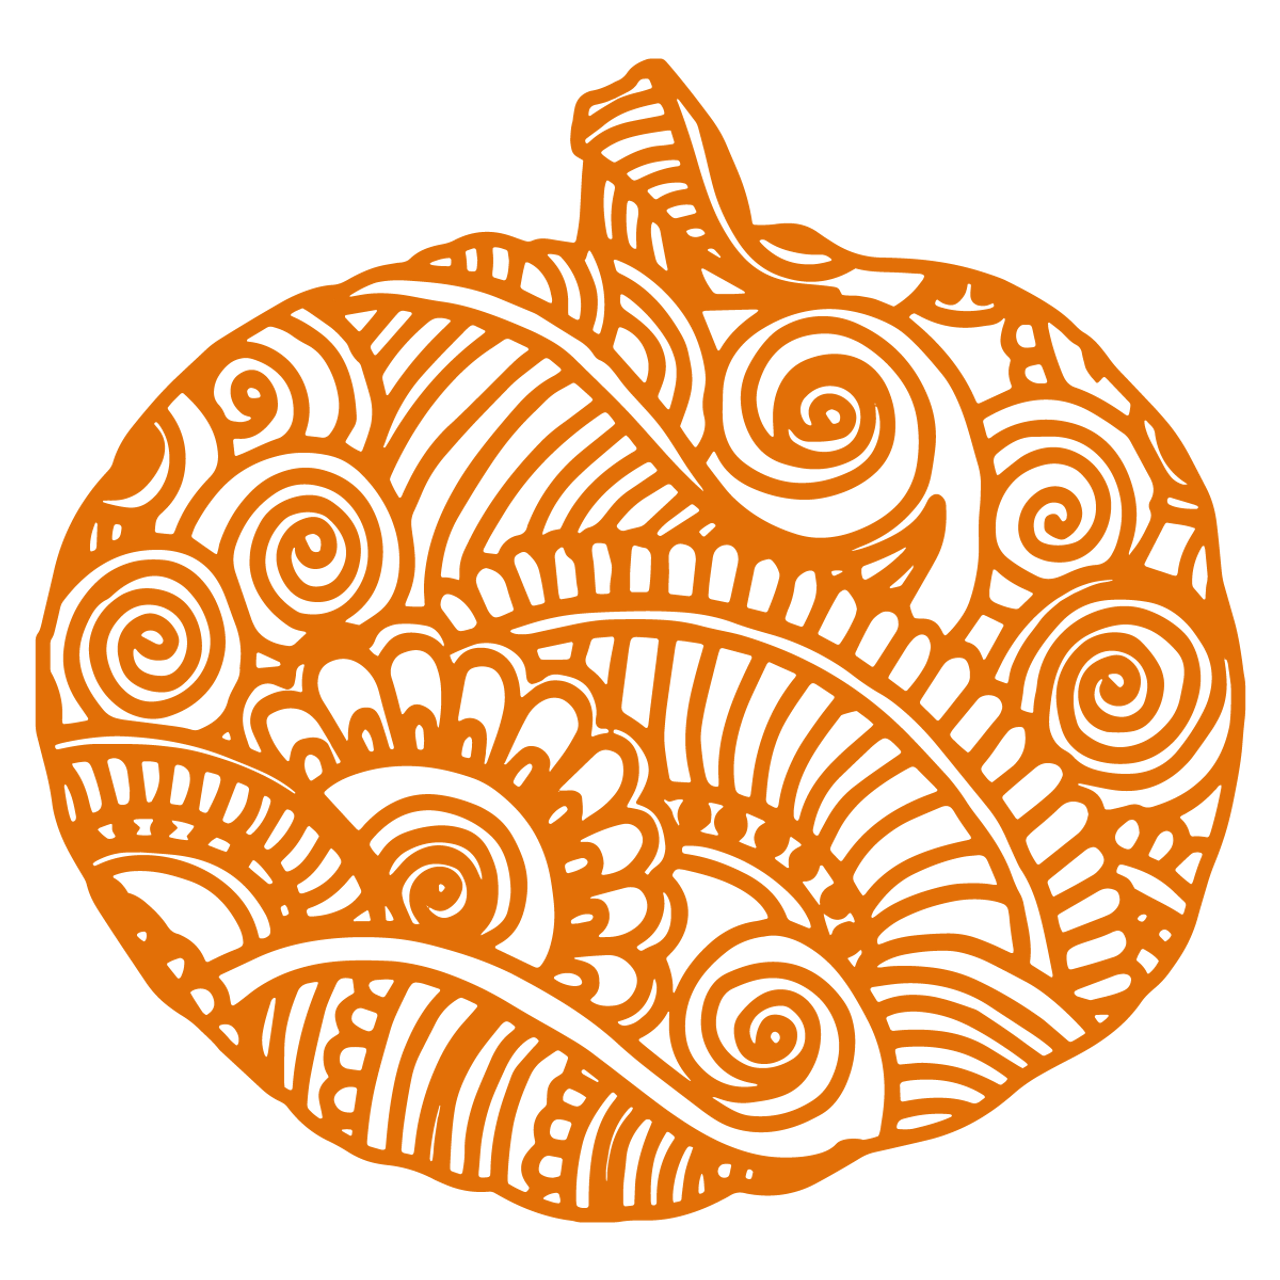 Zentangle Pumpkin Svg Svg Eps Png Dxf Cut Files For Cricut And Silhouette Cameo By Savanasdesign